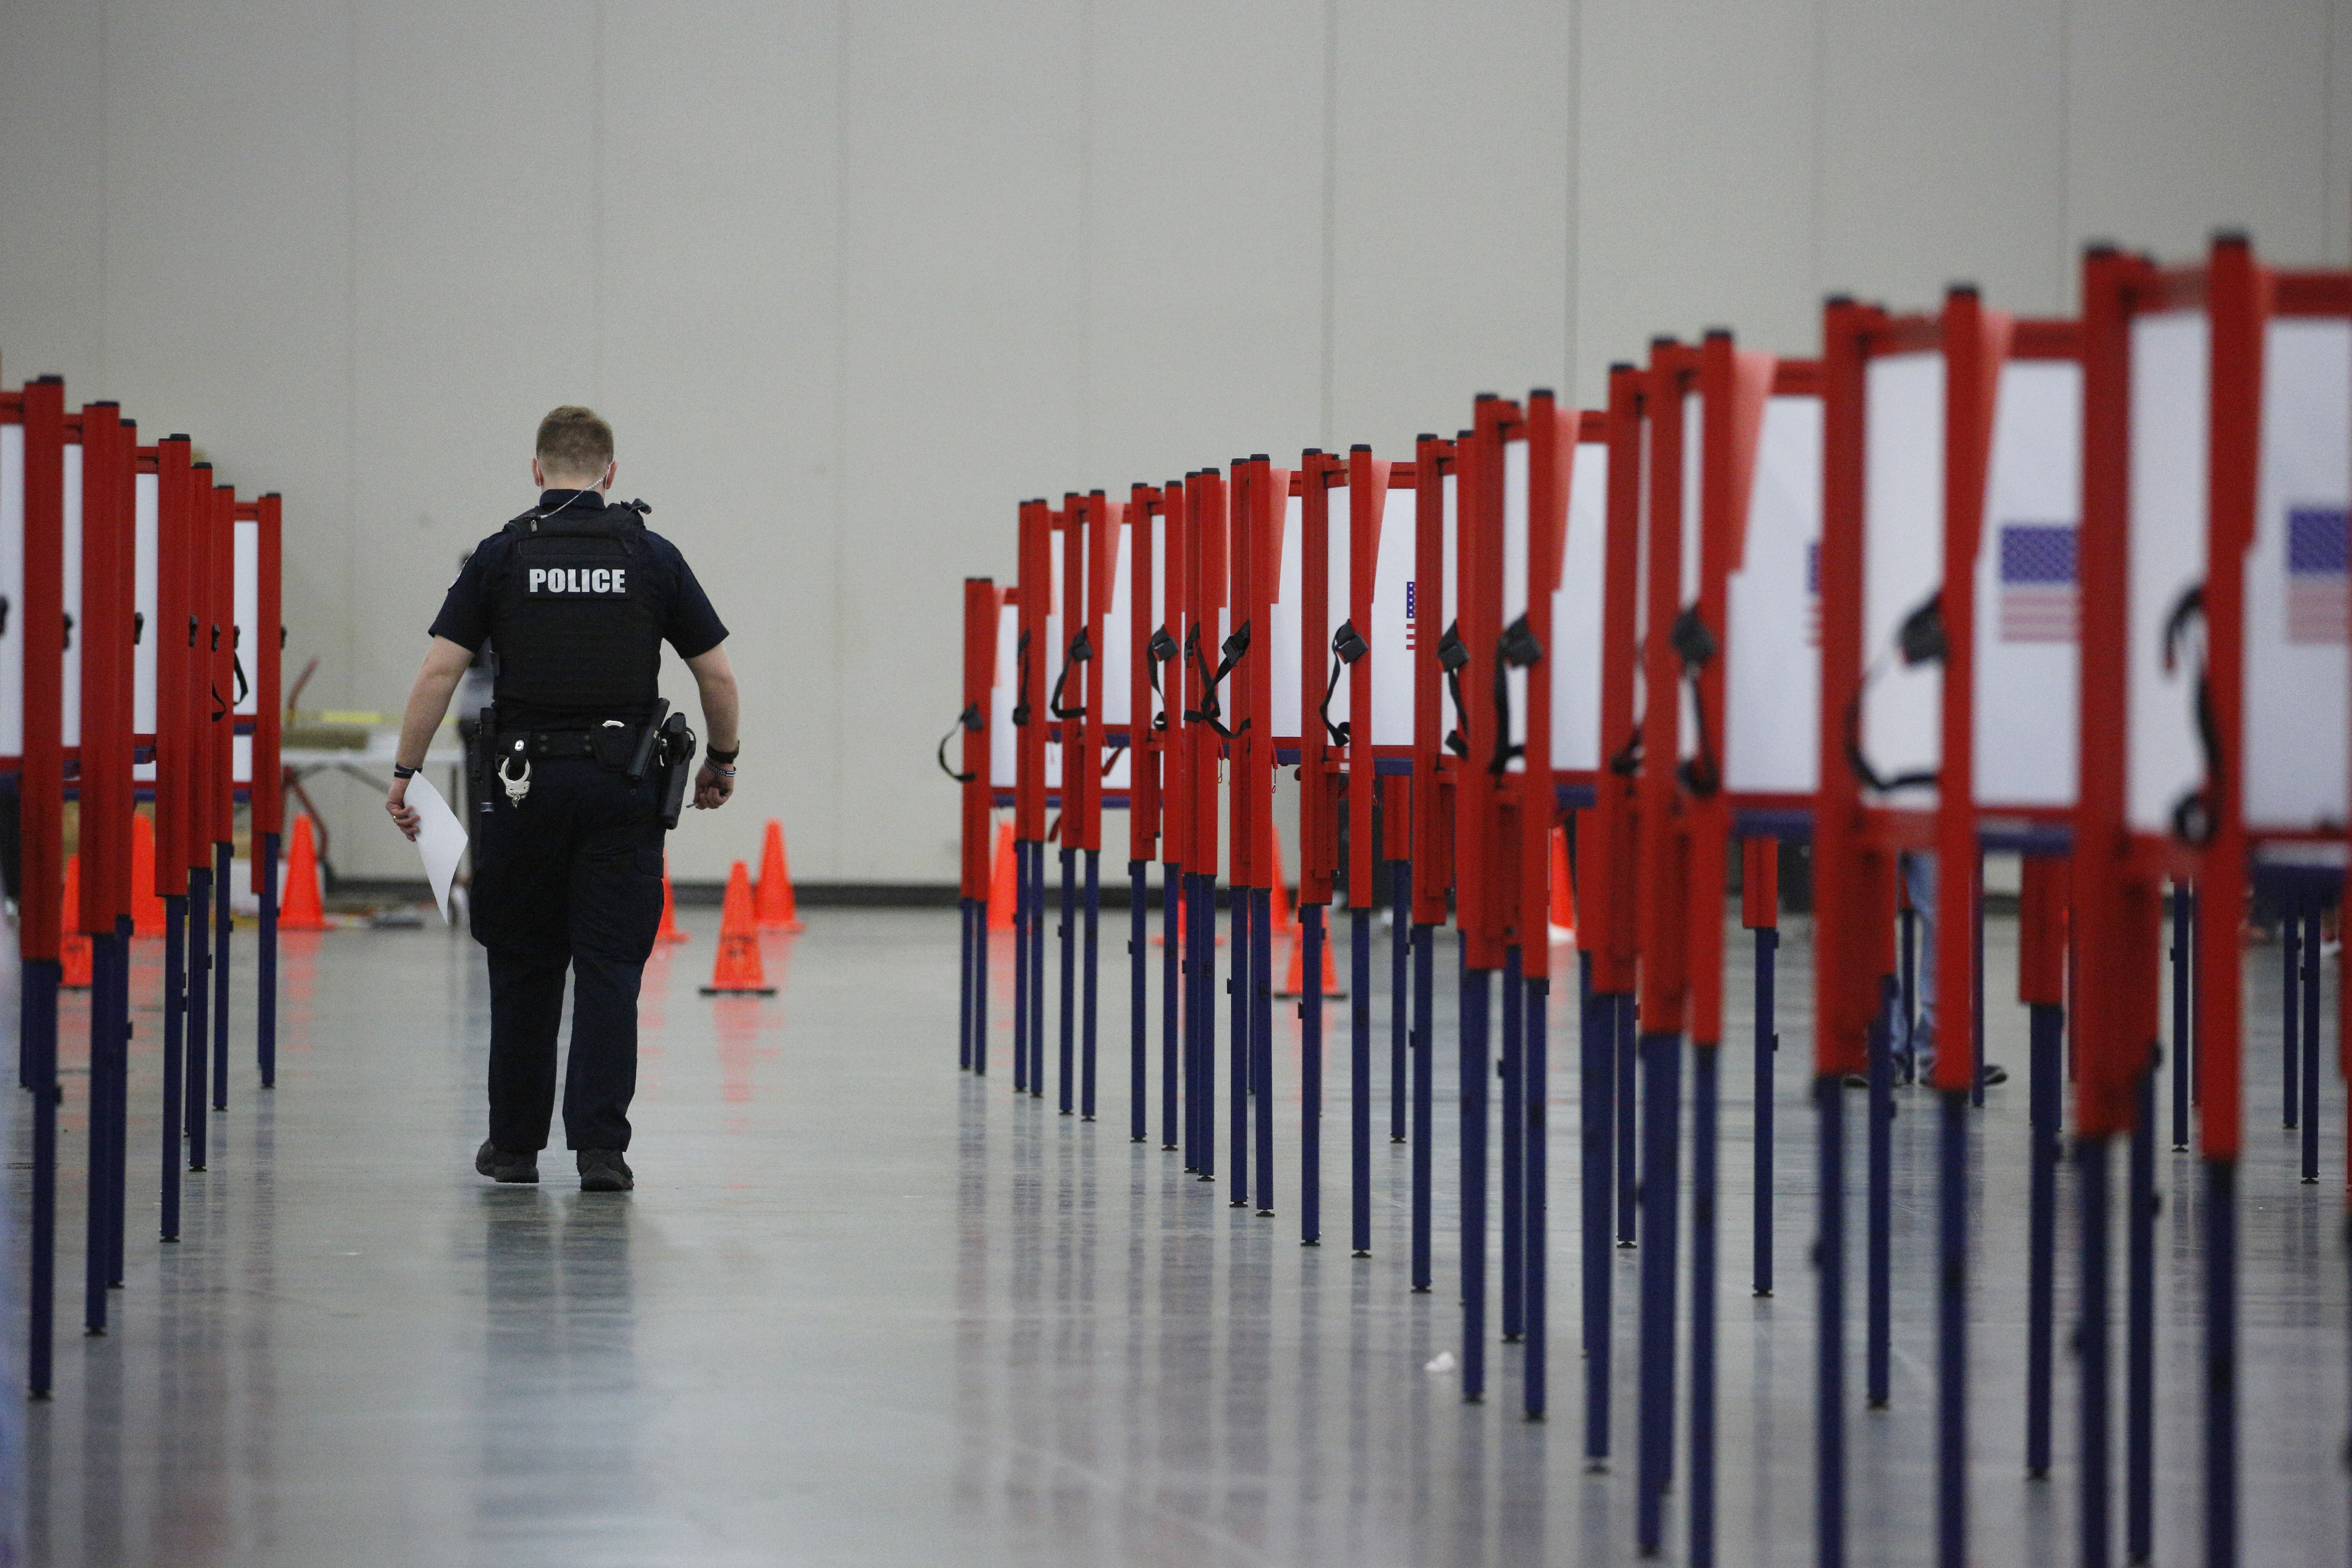 A Louisville Metro Police Department officer carries a ballot while voting at a polling location in Louisville, Kentucky, on June 23, 2020.